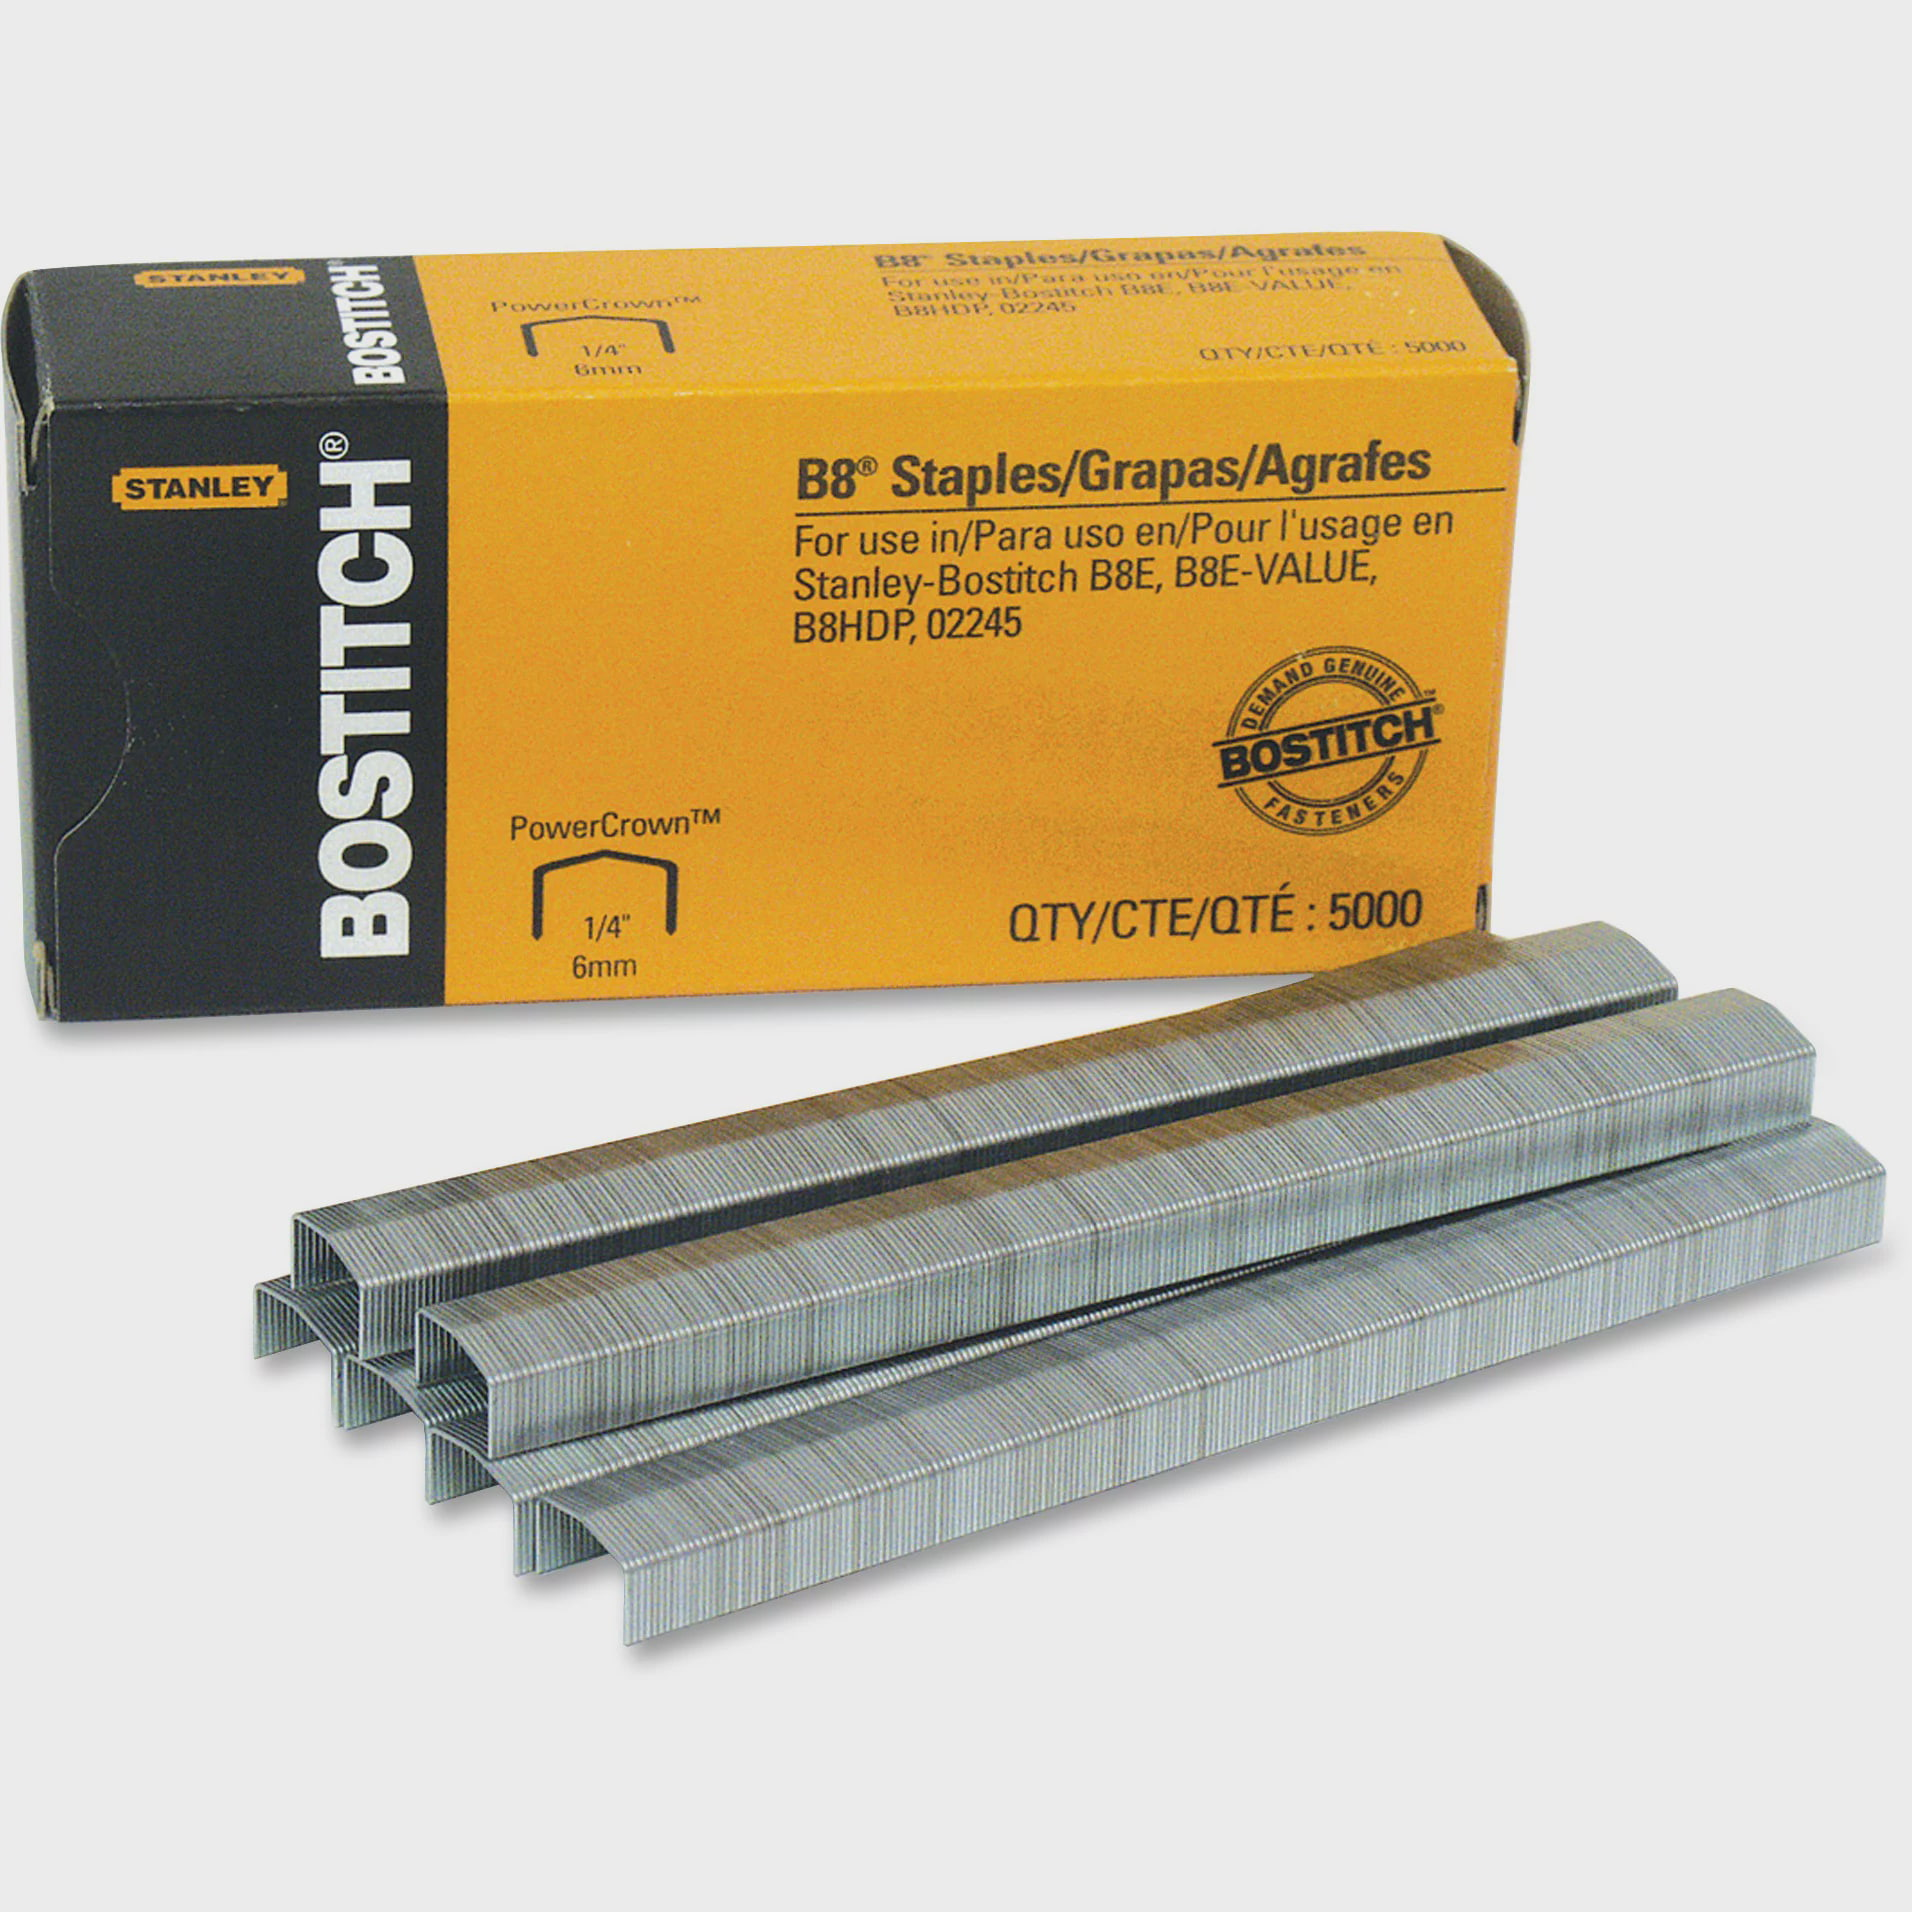 "Bostitch B8 PowerCrown Premium Staples, 1 4"" Leg Length, 5000 Box by Amax Inc"